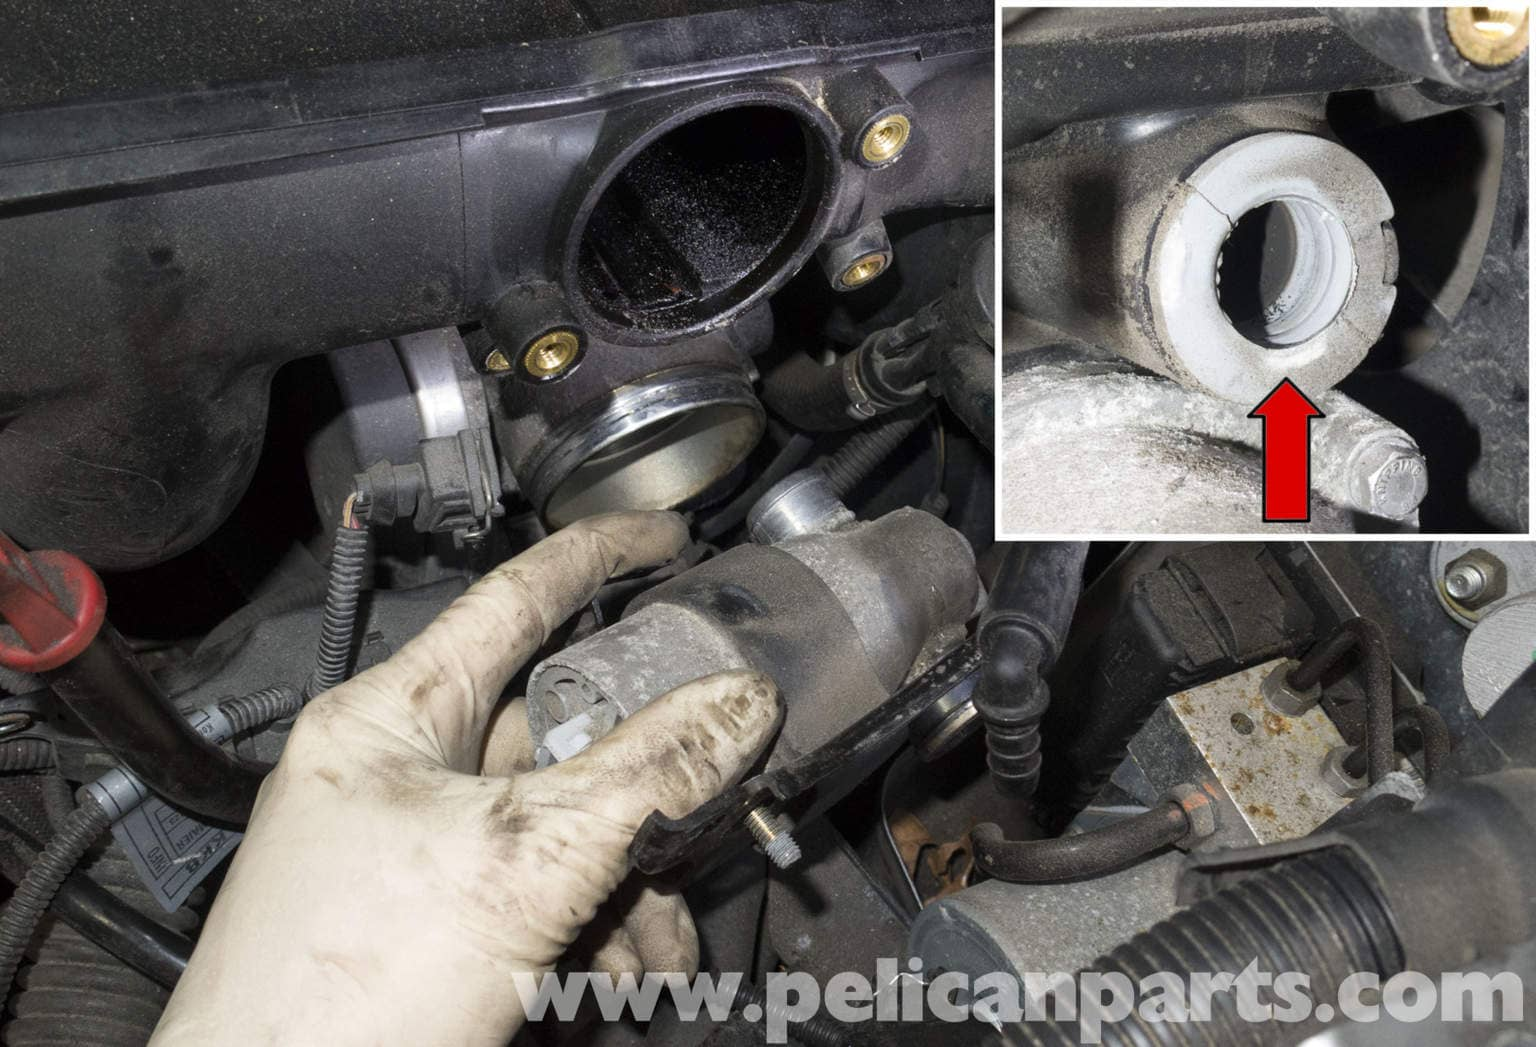 Pelican Technical Article Bmw X3 M54 6 Cylinder Engine